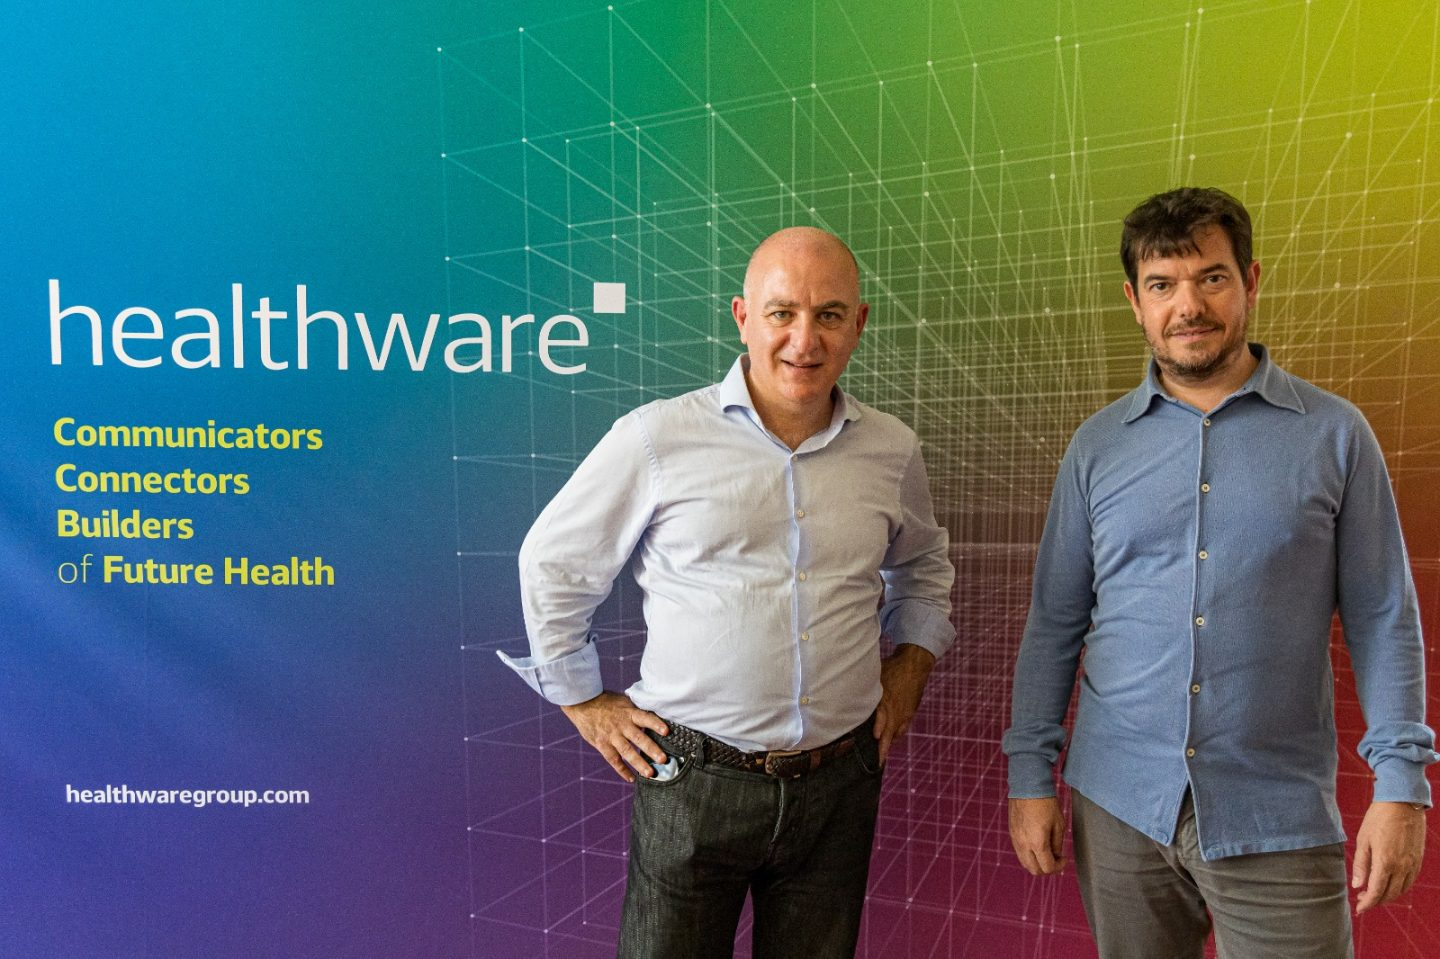 Healthware Group Announces the Appointment of Giovanni Loria as Chief Financial Officer